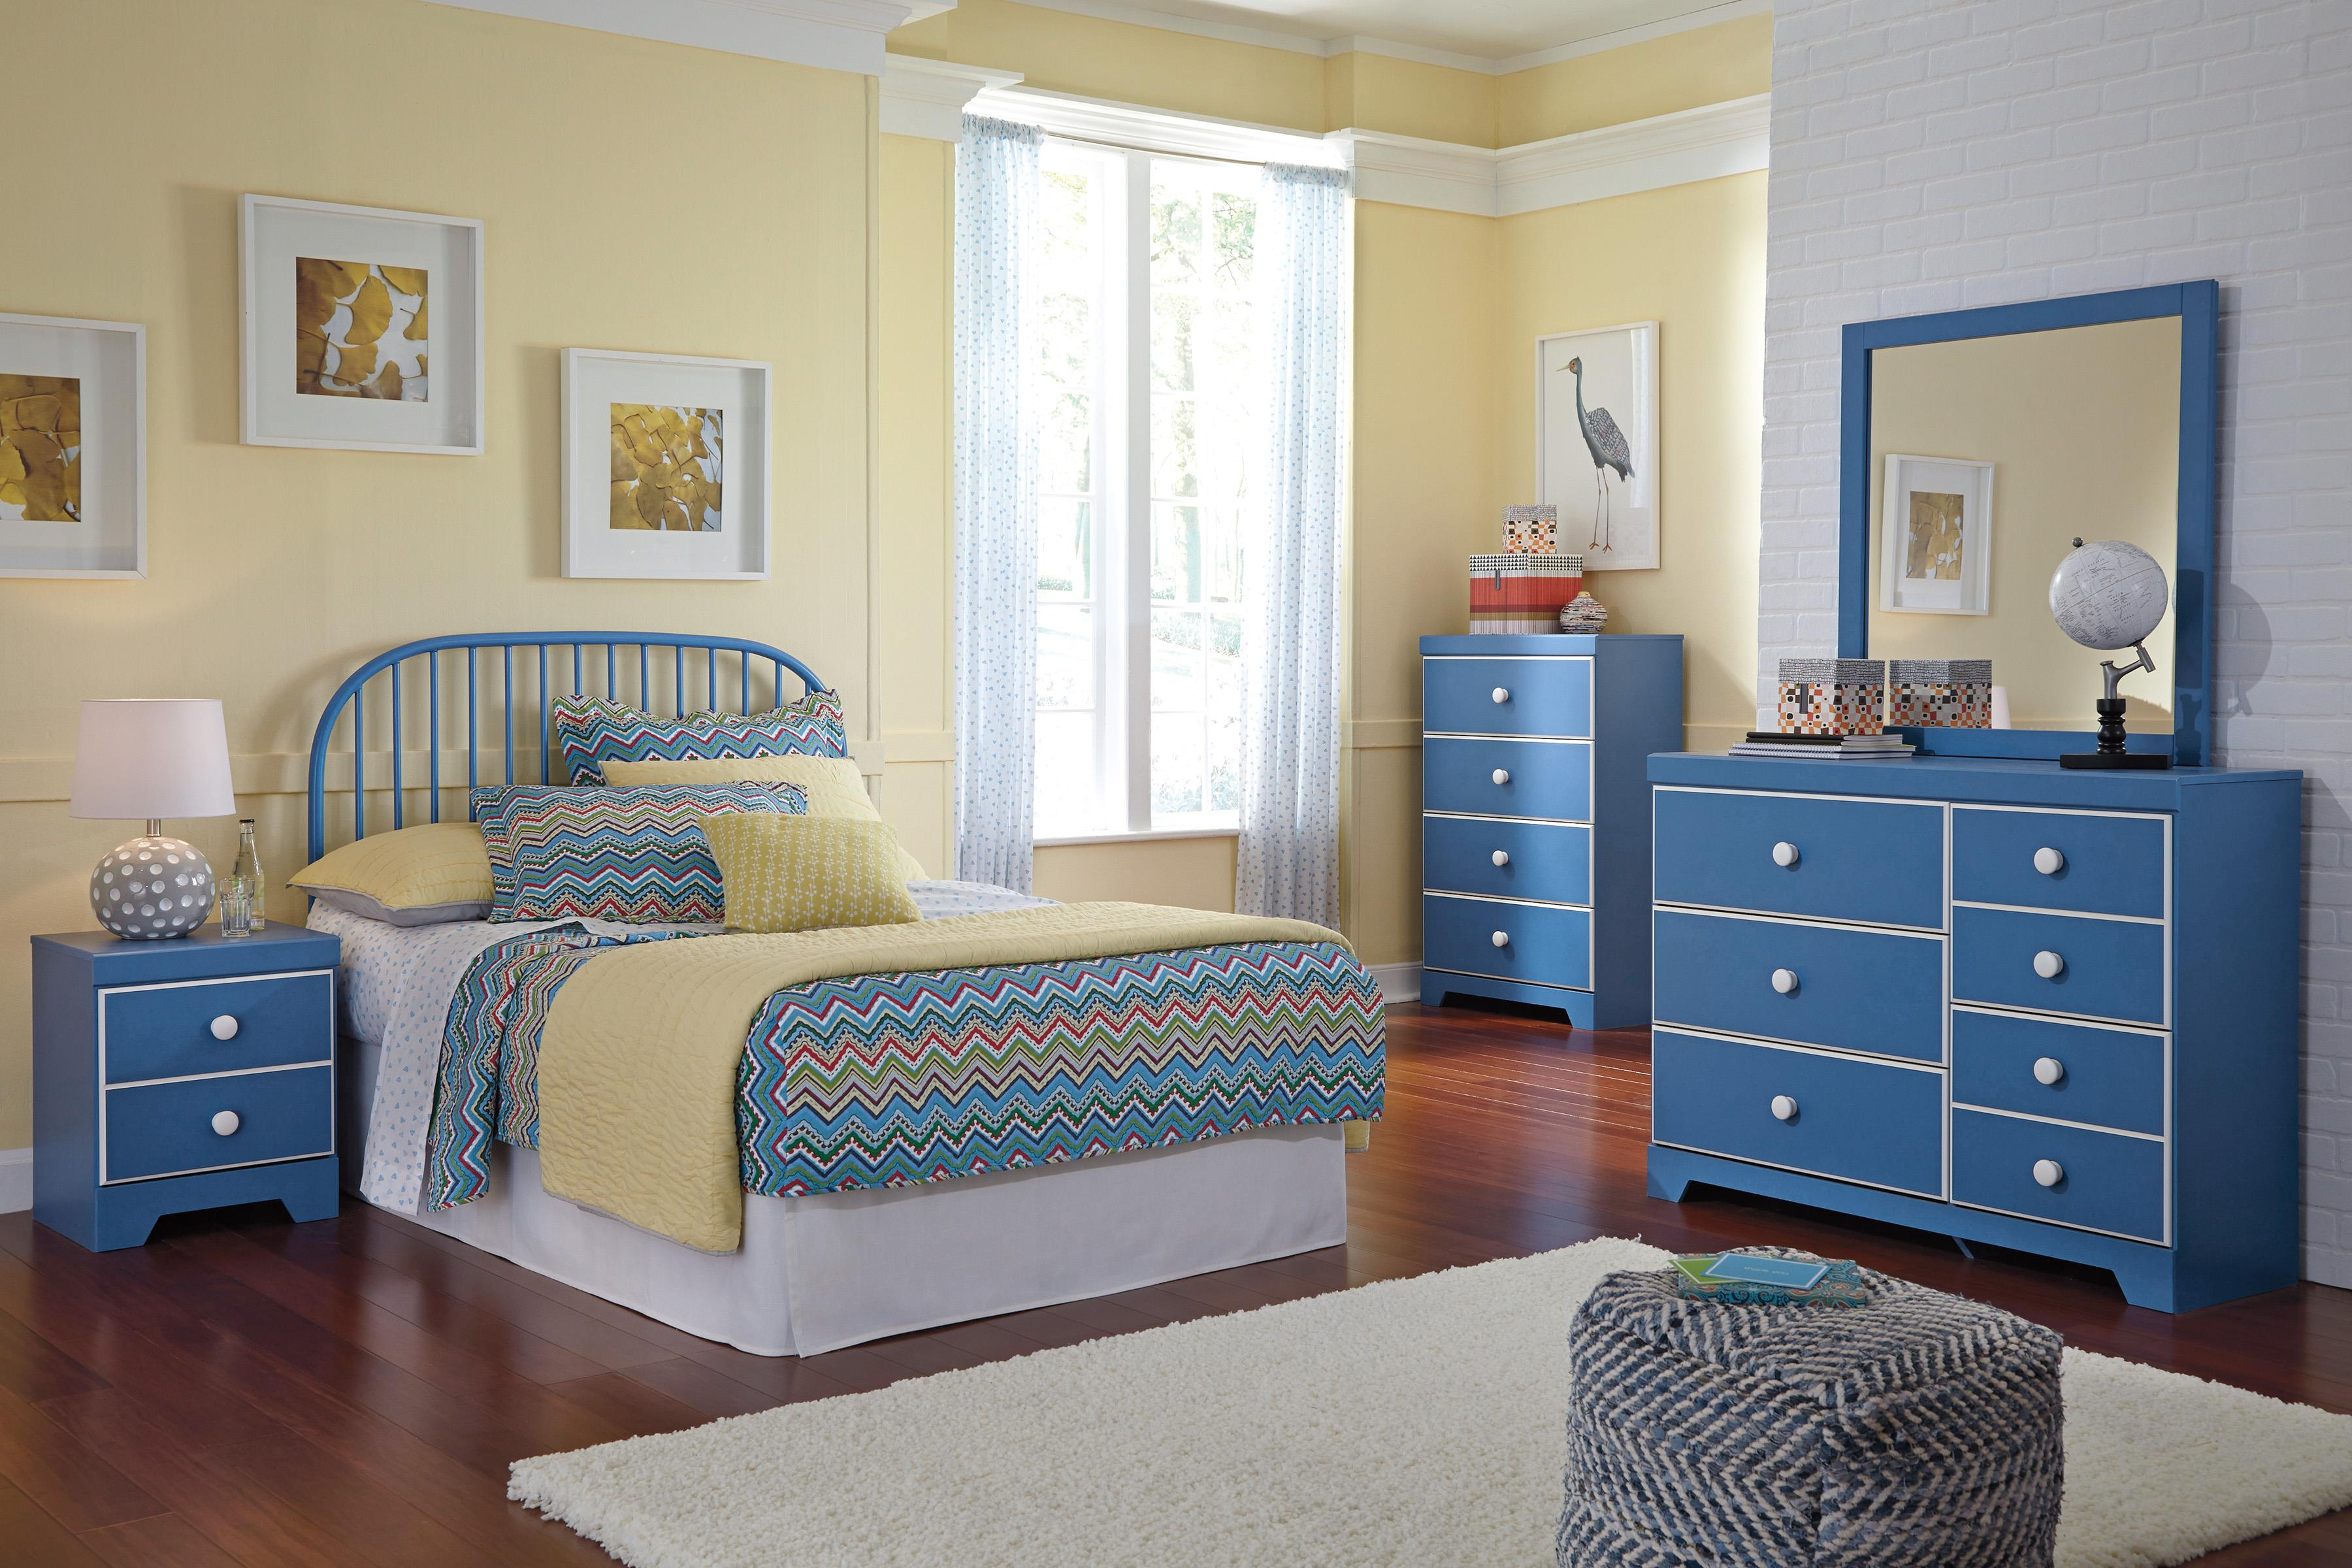 Signature Design by Ashley Bronilly Full Bedroom Group - Item Number: B045 F Bedroom Group 5